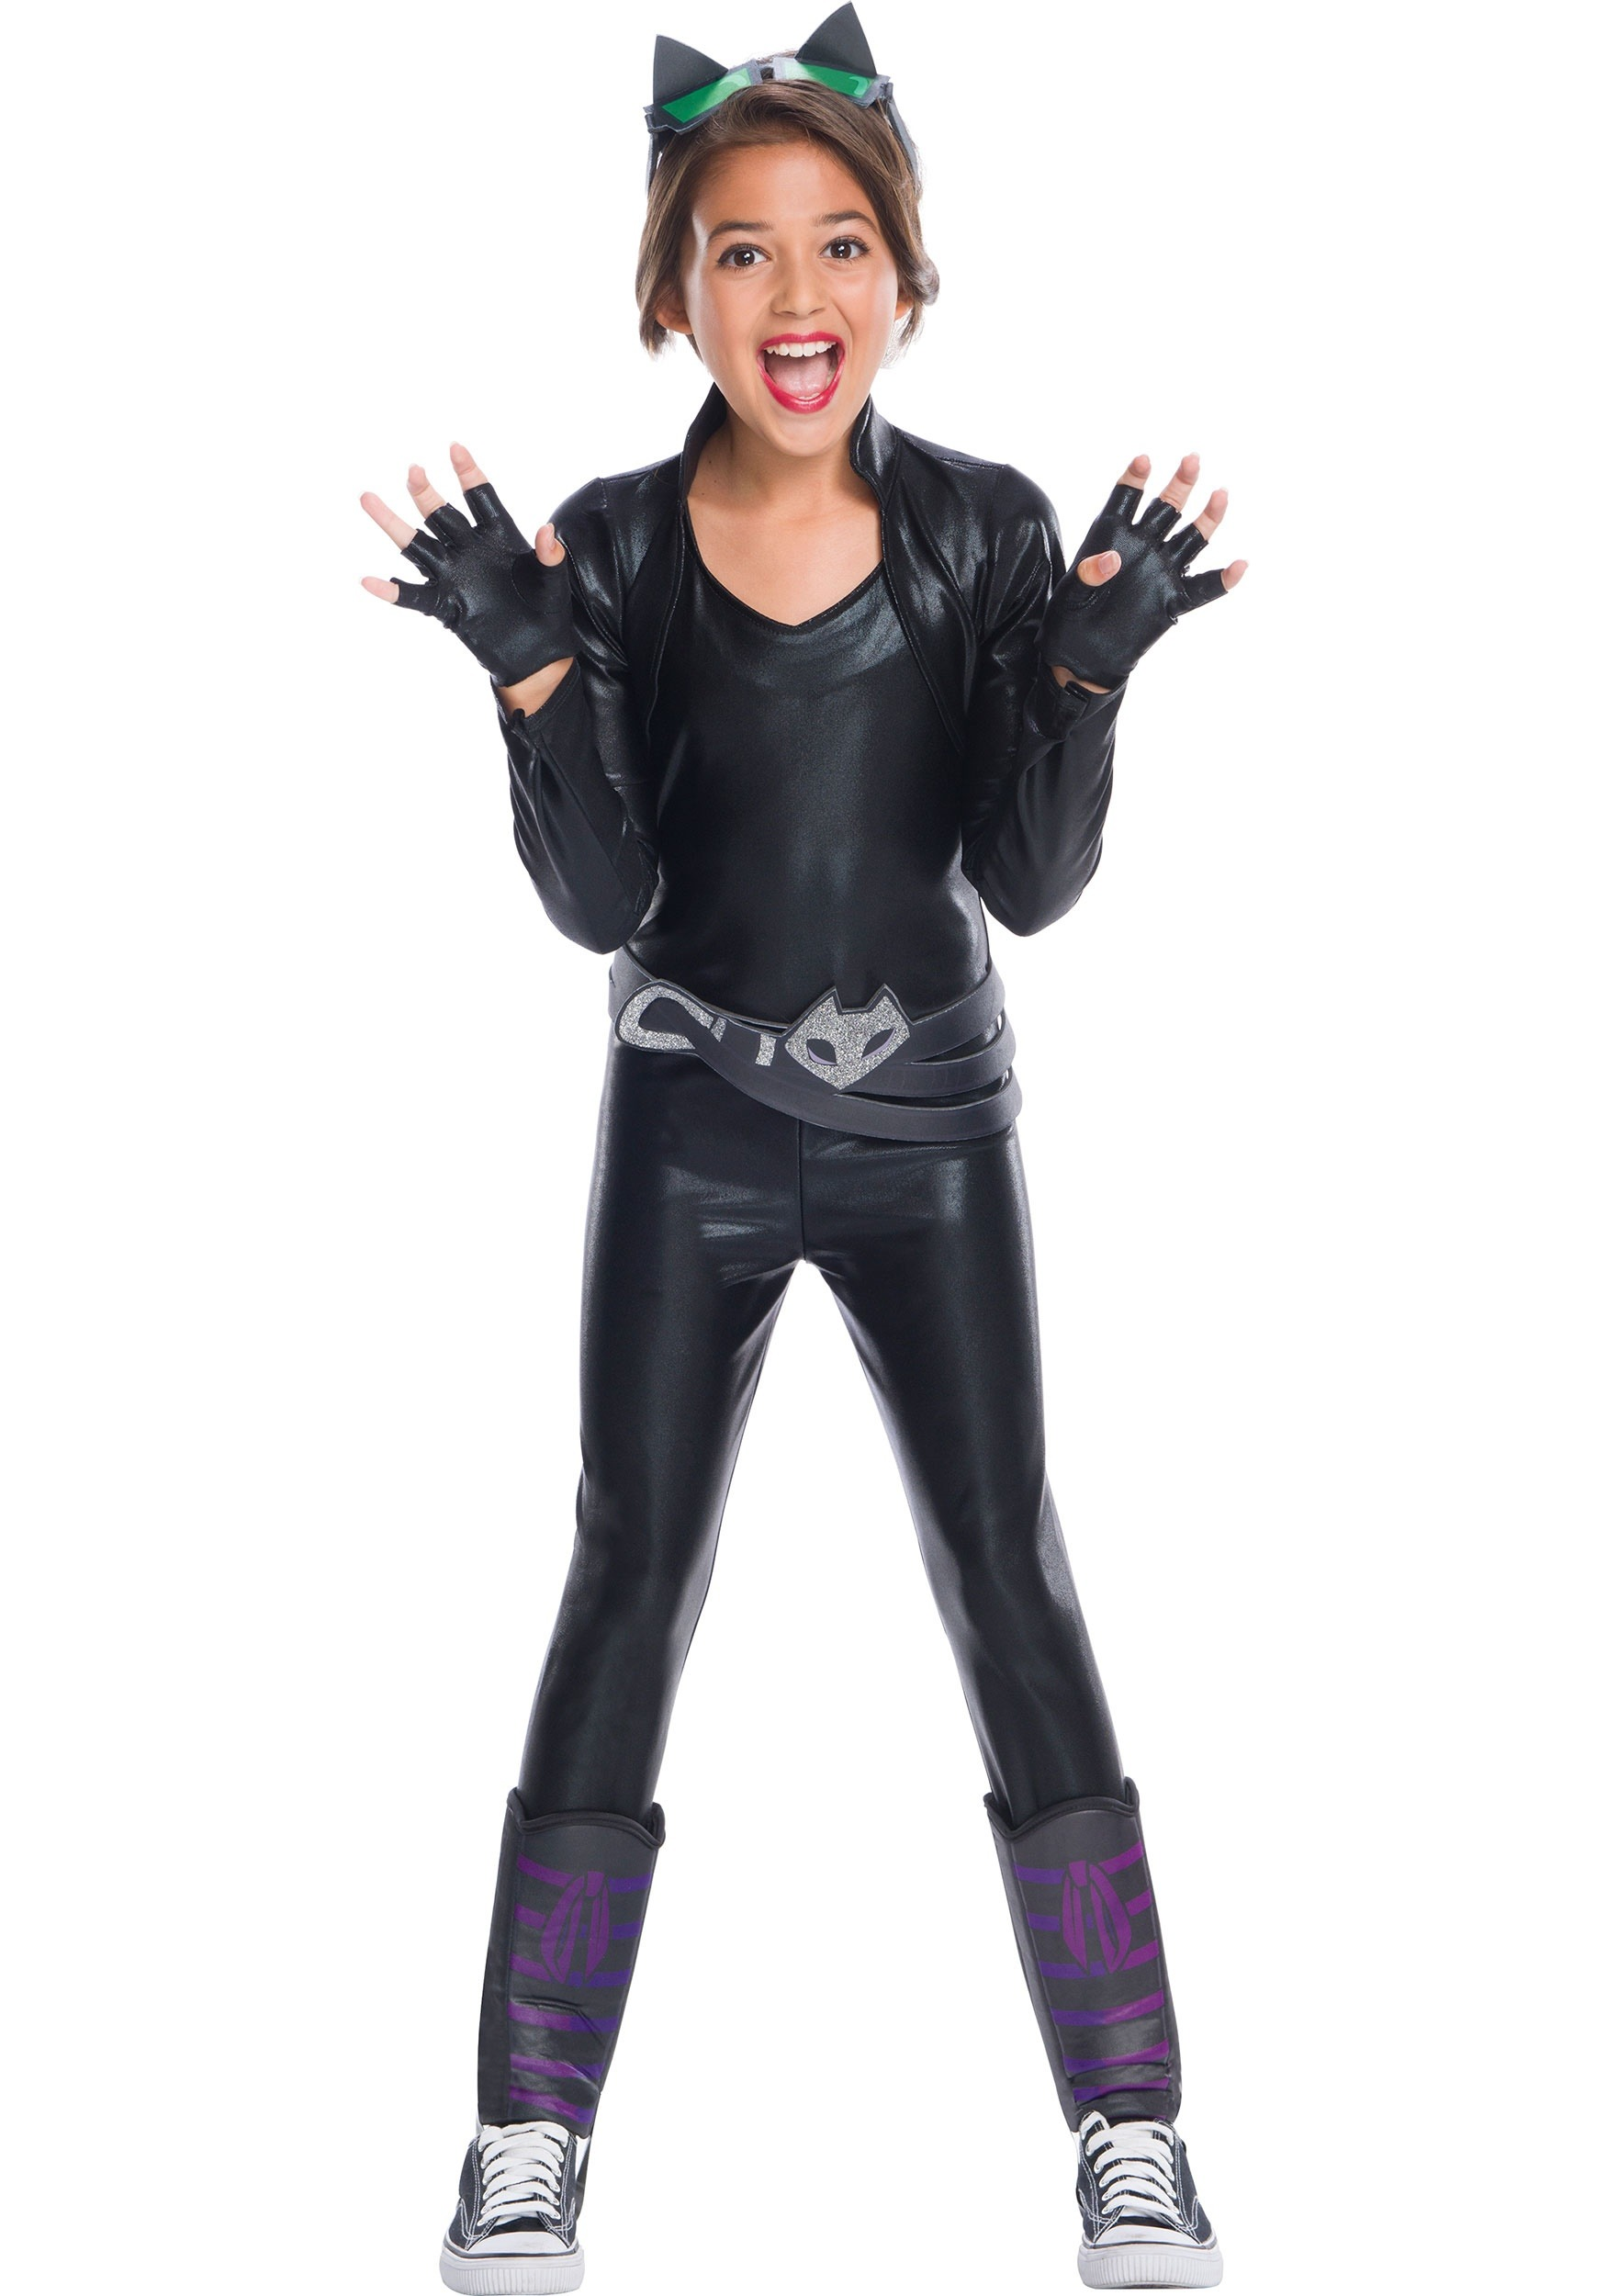 DC Superhero Girls Catwoman Costume  sc 1 st  Halloween Costumes UK : superhero girl costumes  - Germanpascual.Com